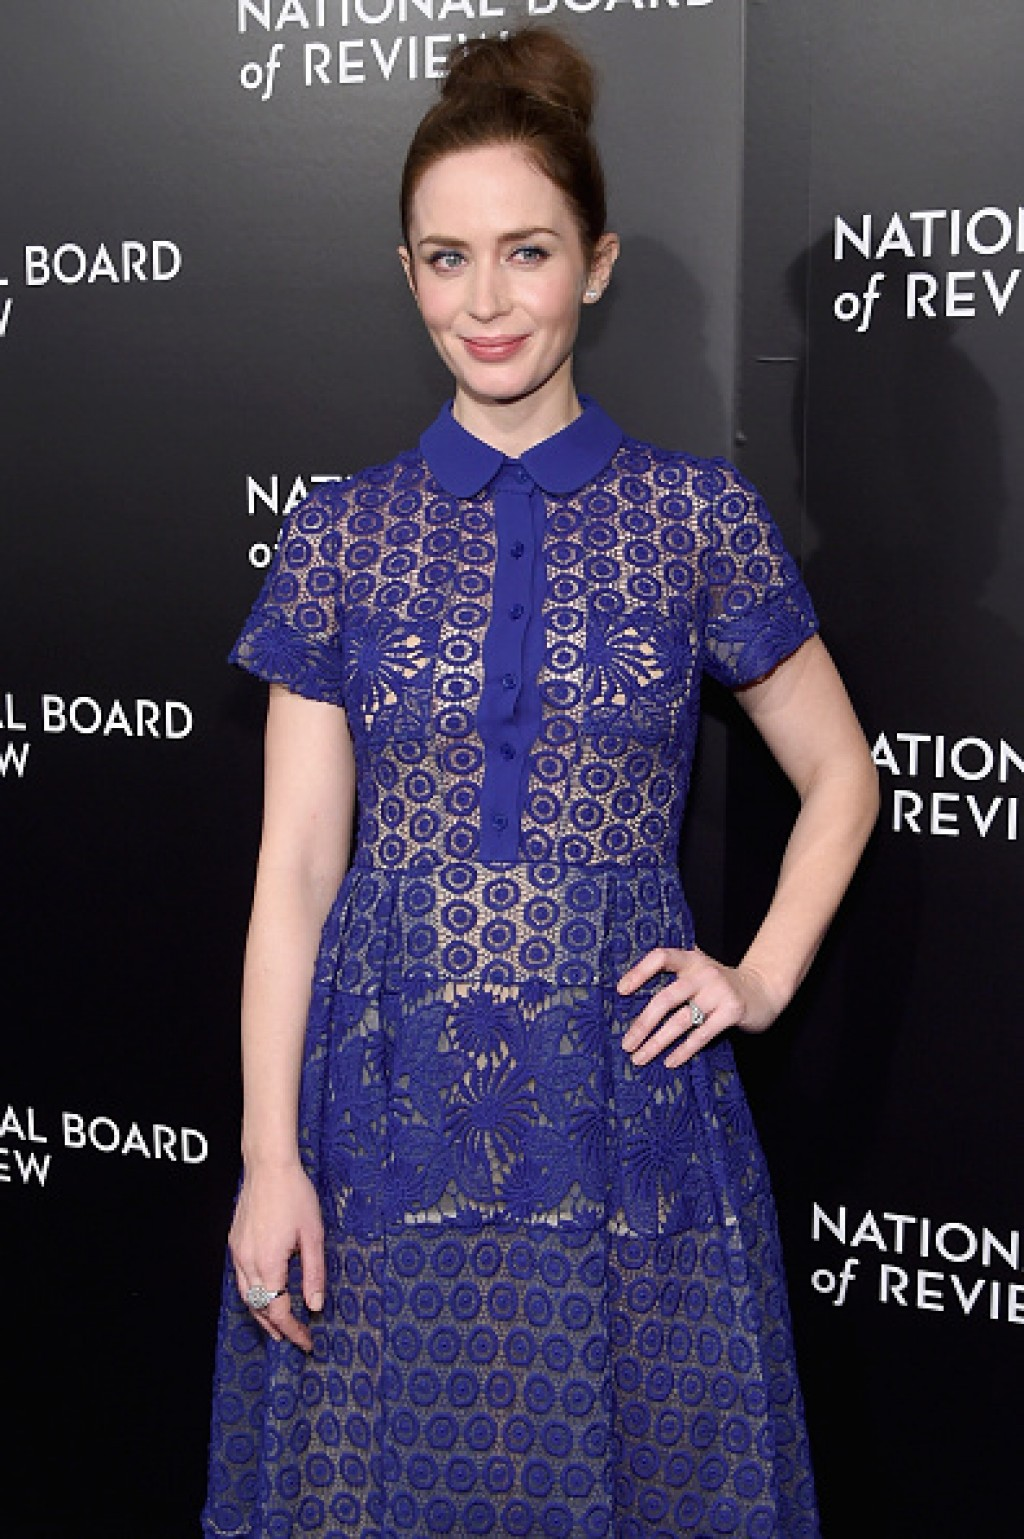 Emily-Blunt-016-National-Board-of-Review-Gala-Lace-gon-1024x1539